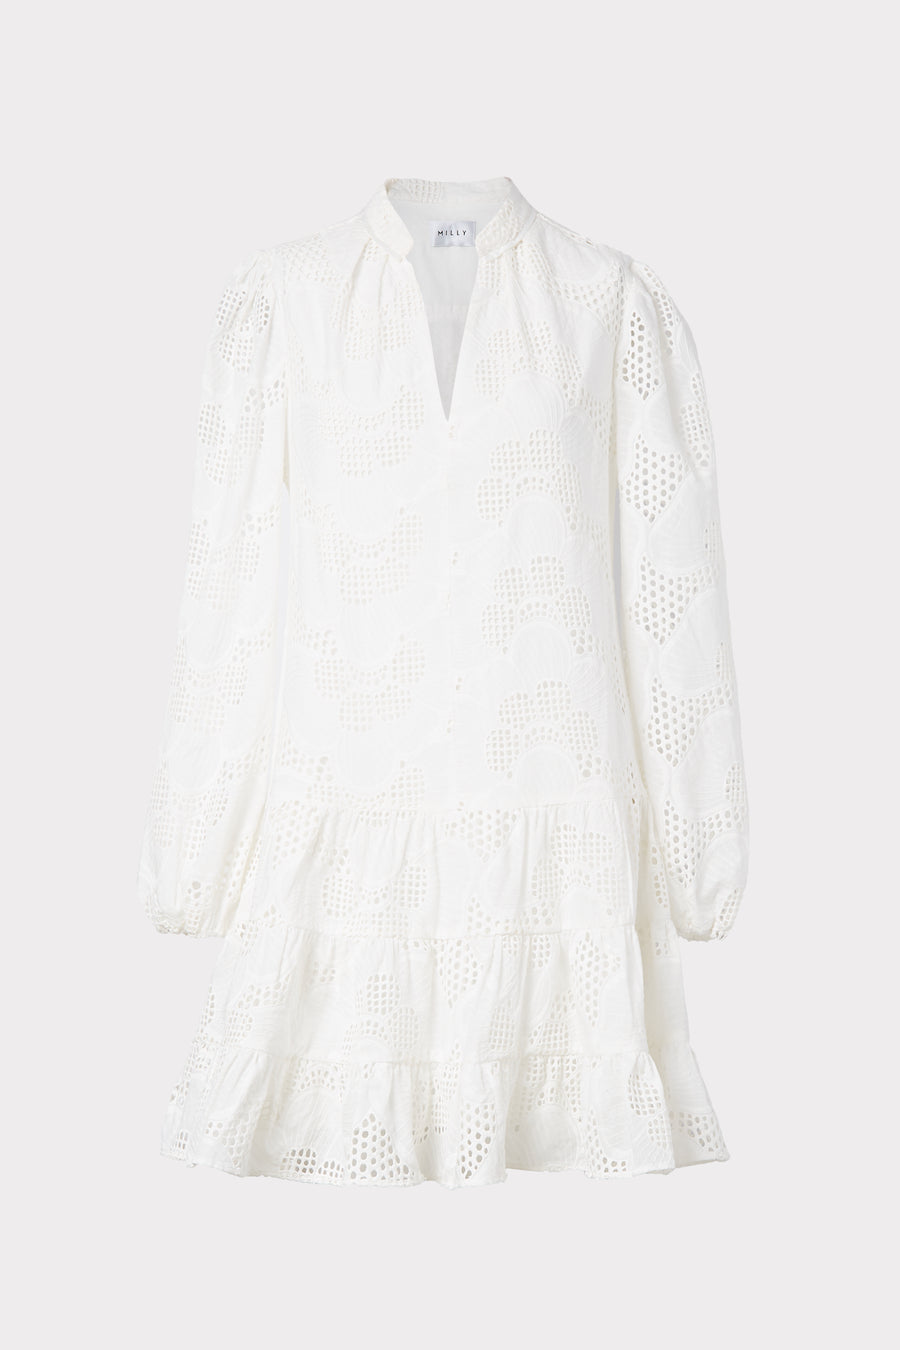 Margaret Pieres Eyelet Dress